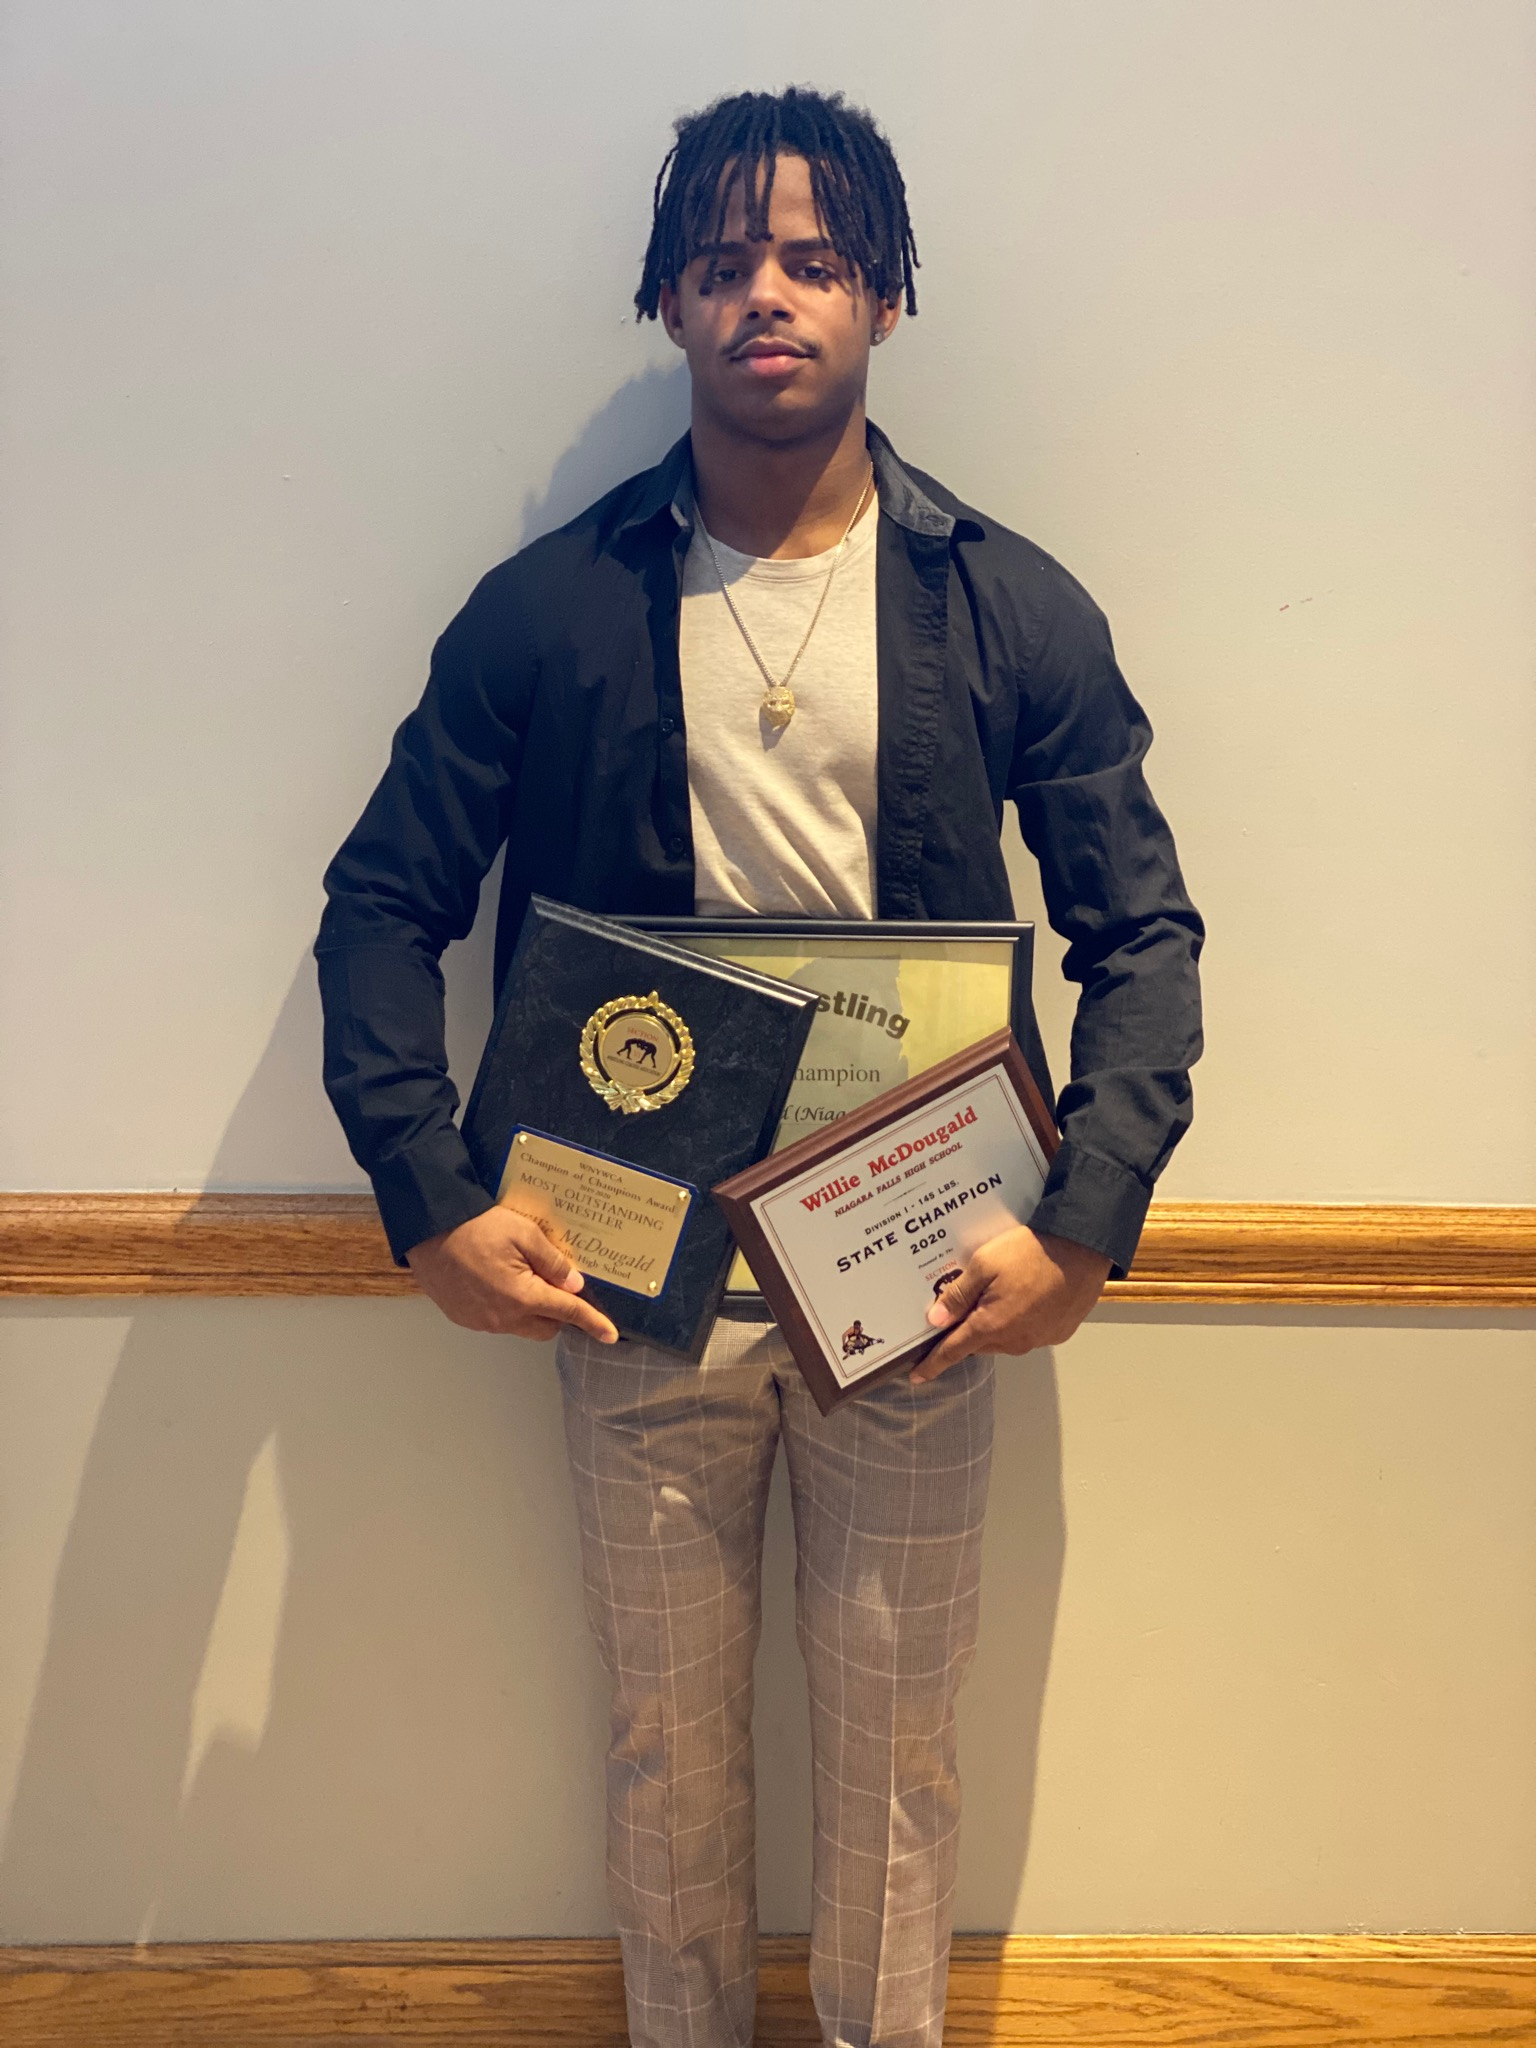 Wrestlers, Coaches, and Contributors Honored at 15th Annual WNY Wrestling Coaches Association Awards Banquet